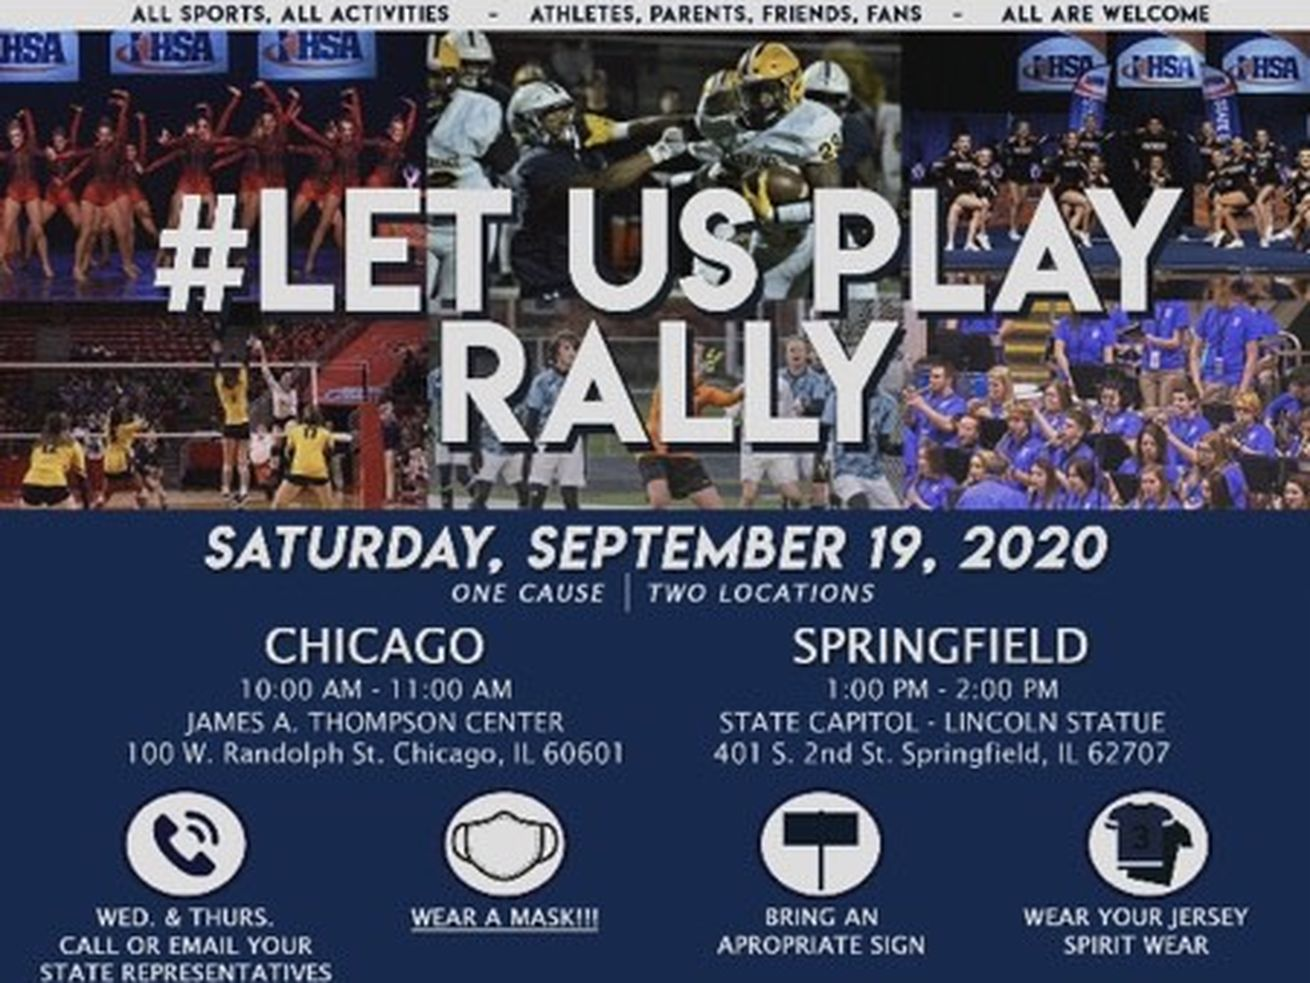 Let Us Play protest rally livestream